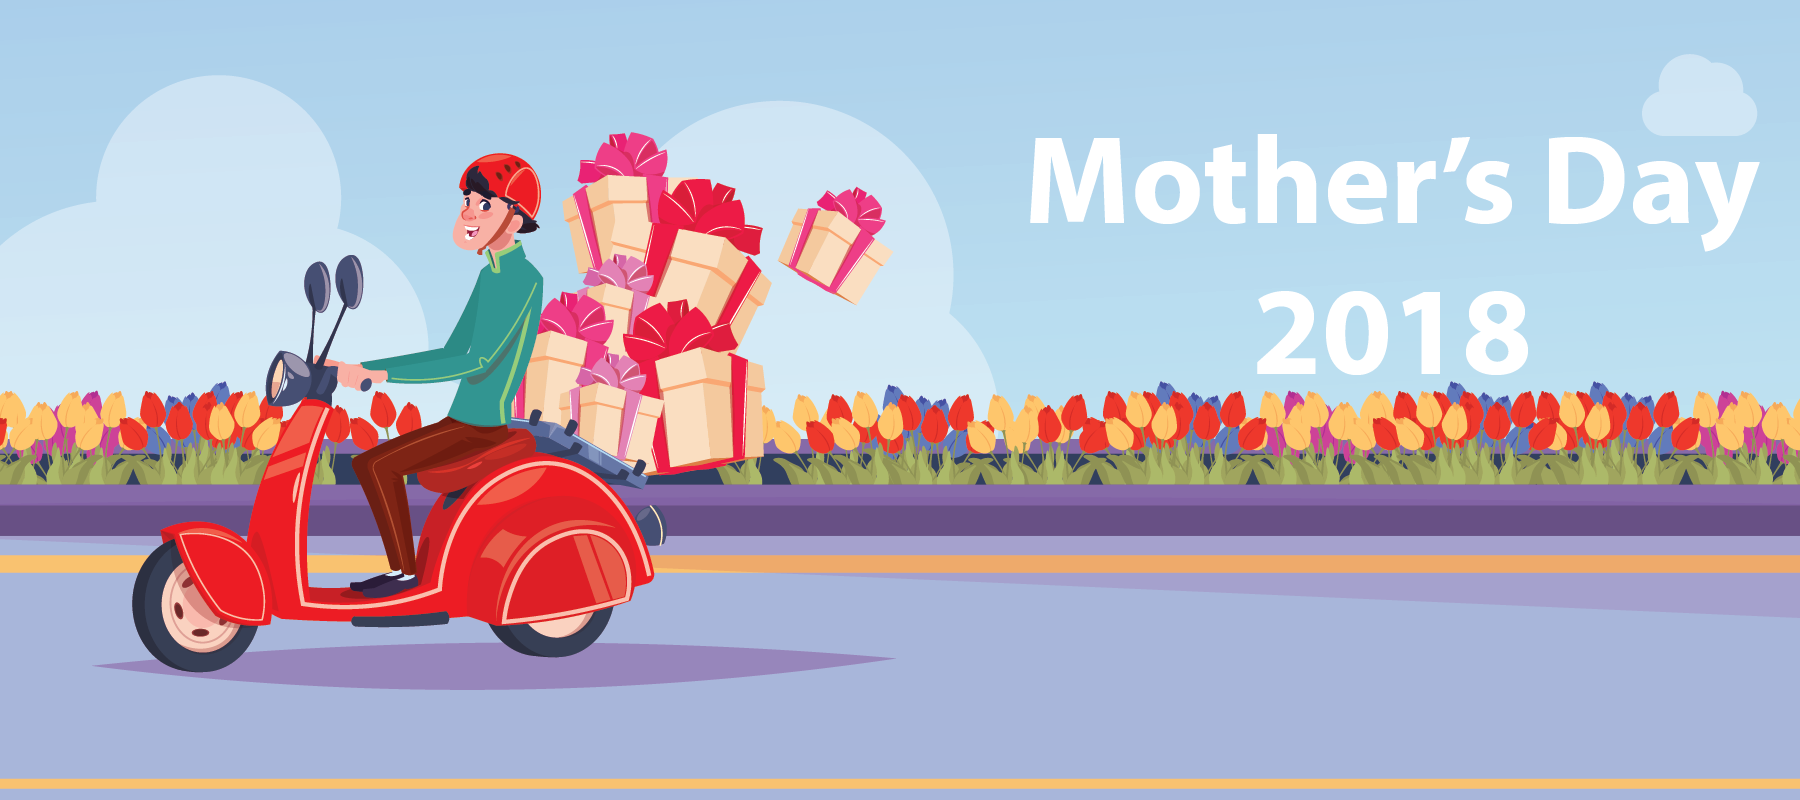 Mothers-day-23-billion-dollars